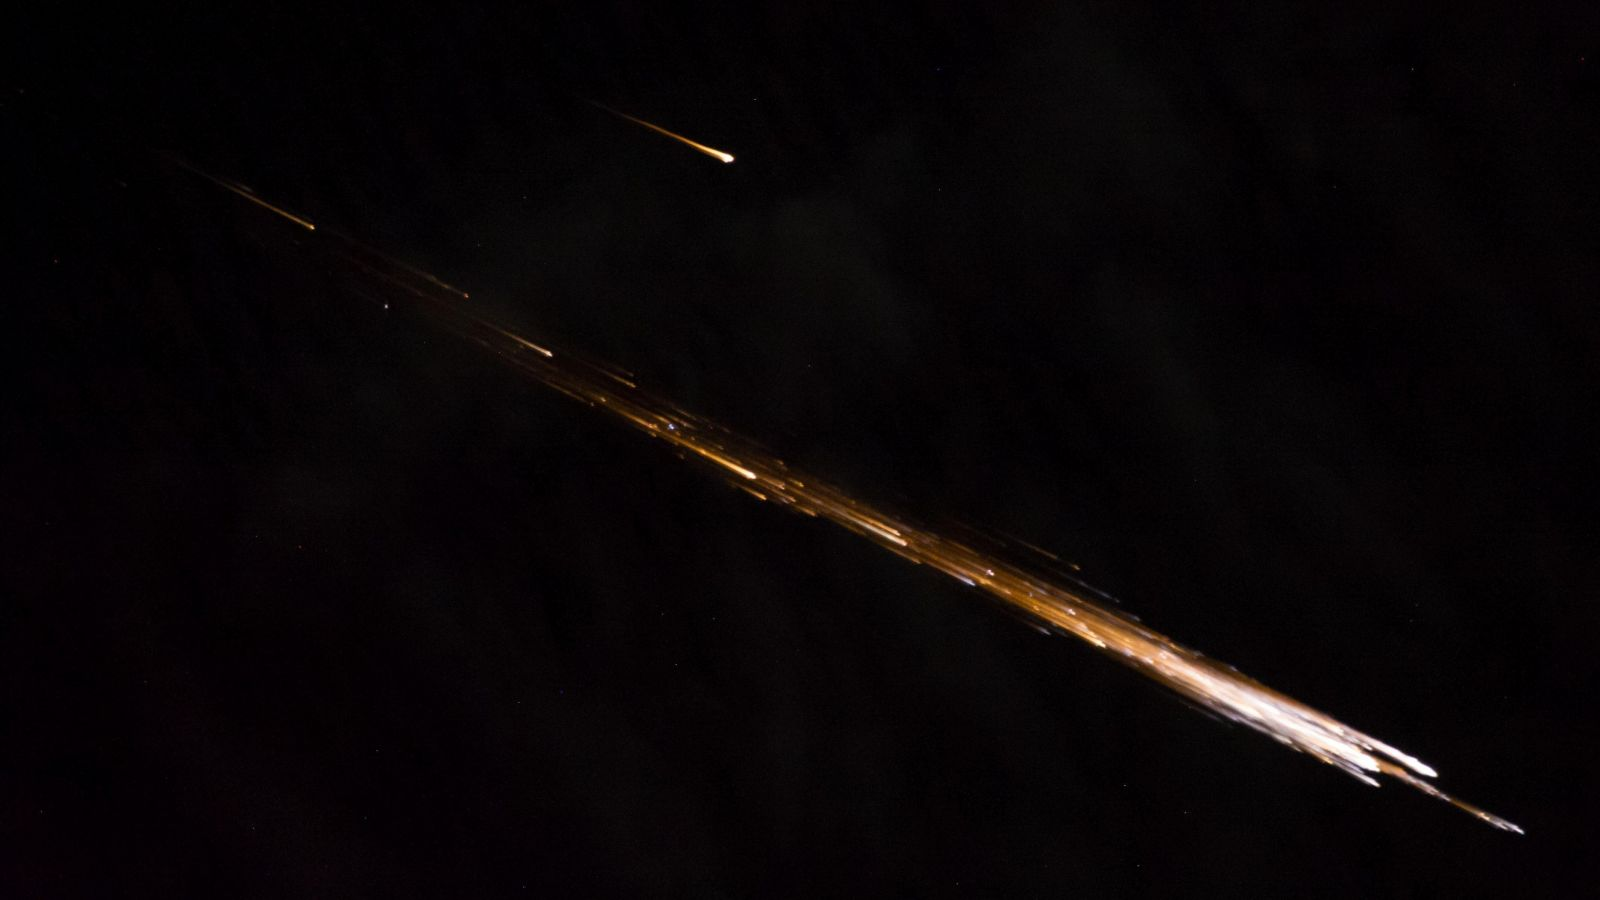 The re-entry of the second Cygnus spacecraft in 2014. Photo Credit: NASA